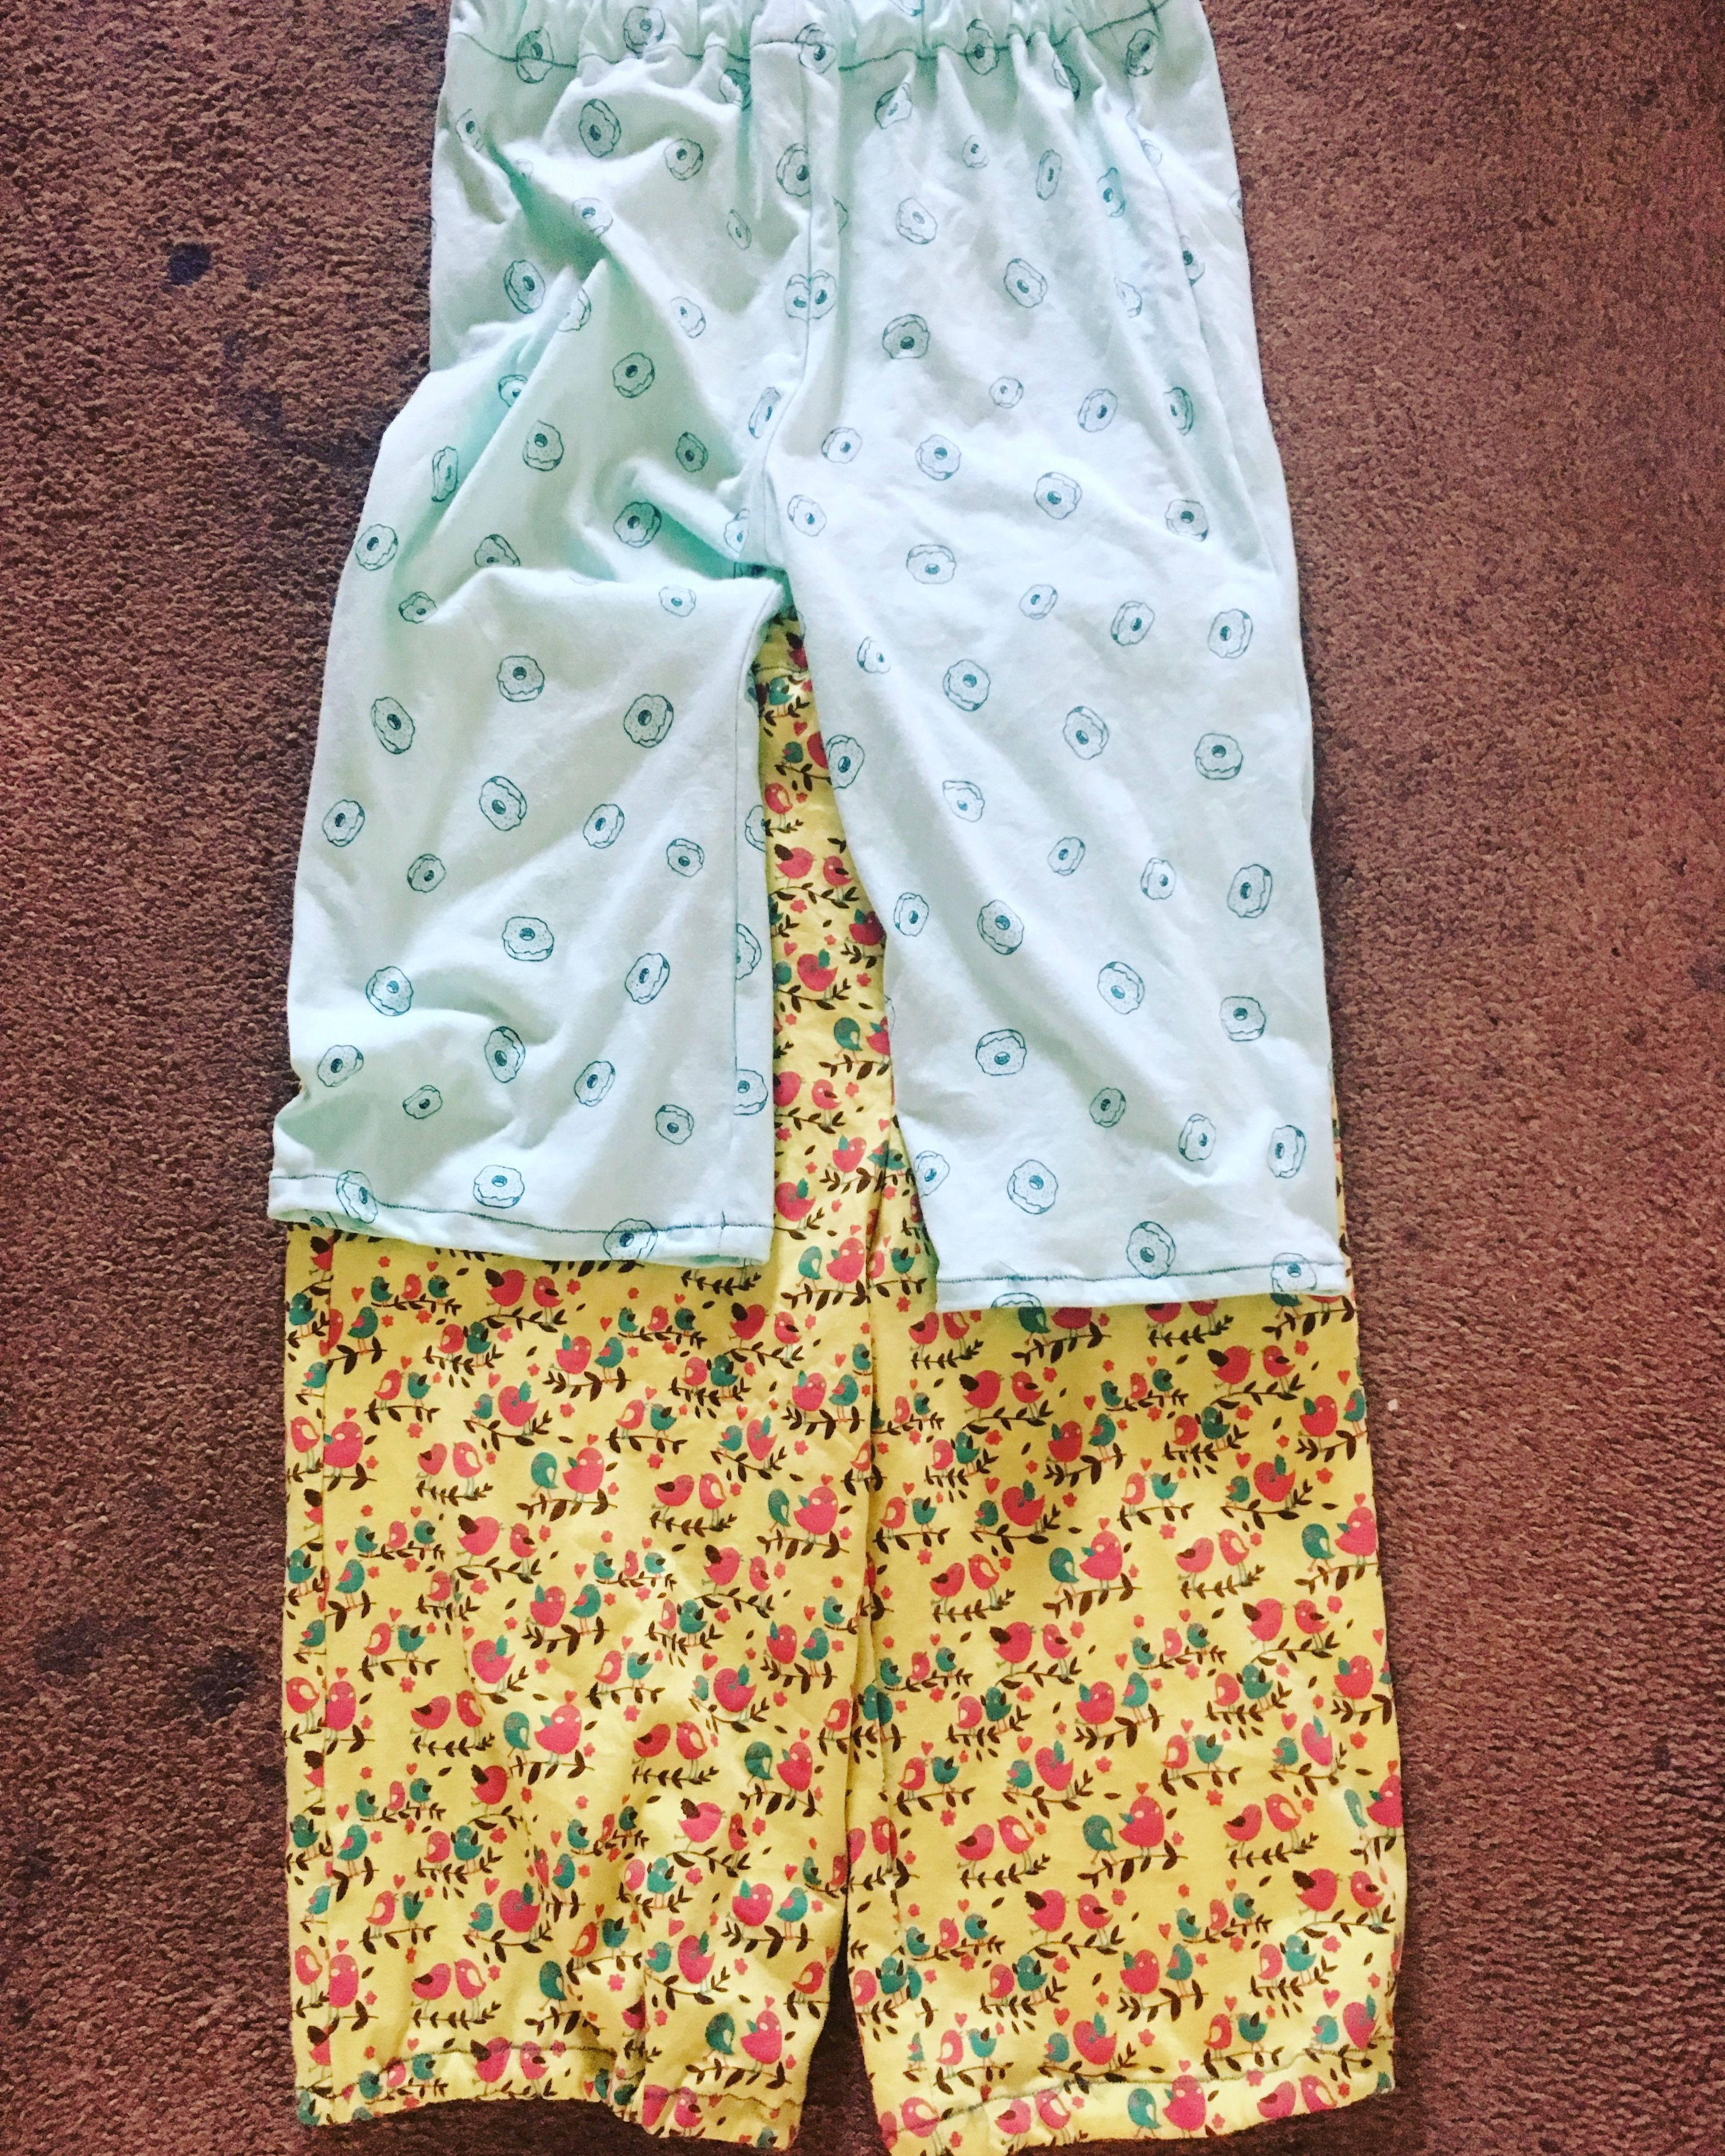 Another pair of #easypjpants for the eldest & the girly - this time out of these cute #donuts and #birds #jerseyfabric :) #sewing